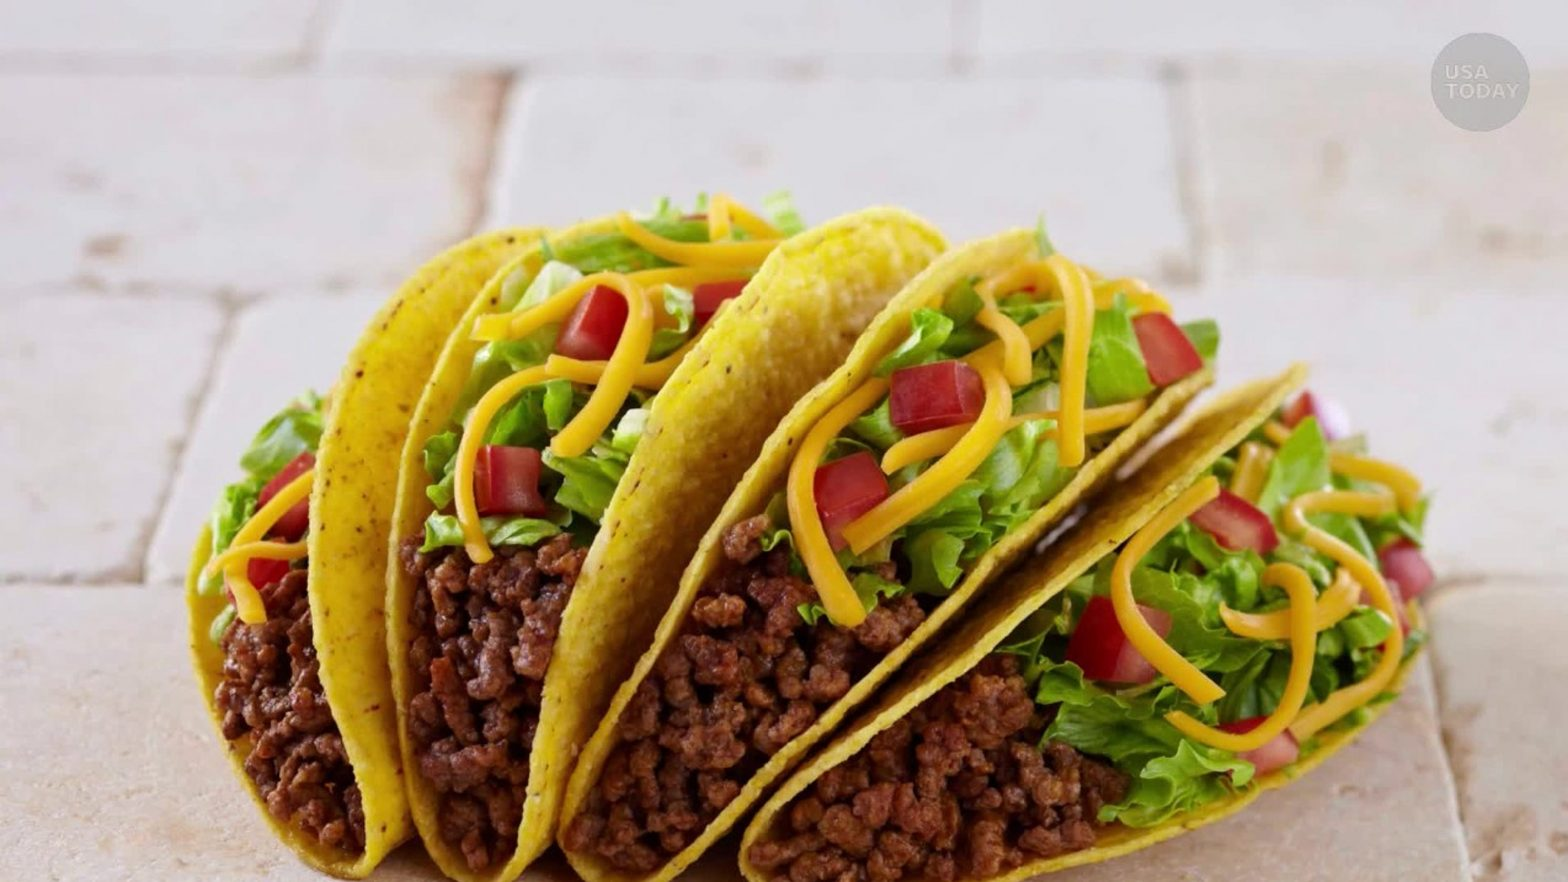 Taco Bell pulls beef from some Michigan stores on quality concerns – Detroit Free Press